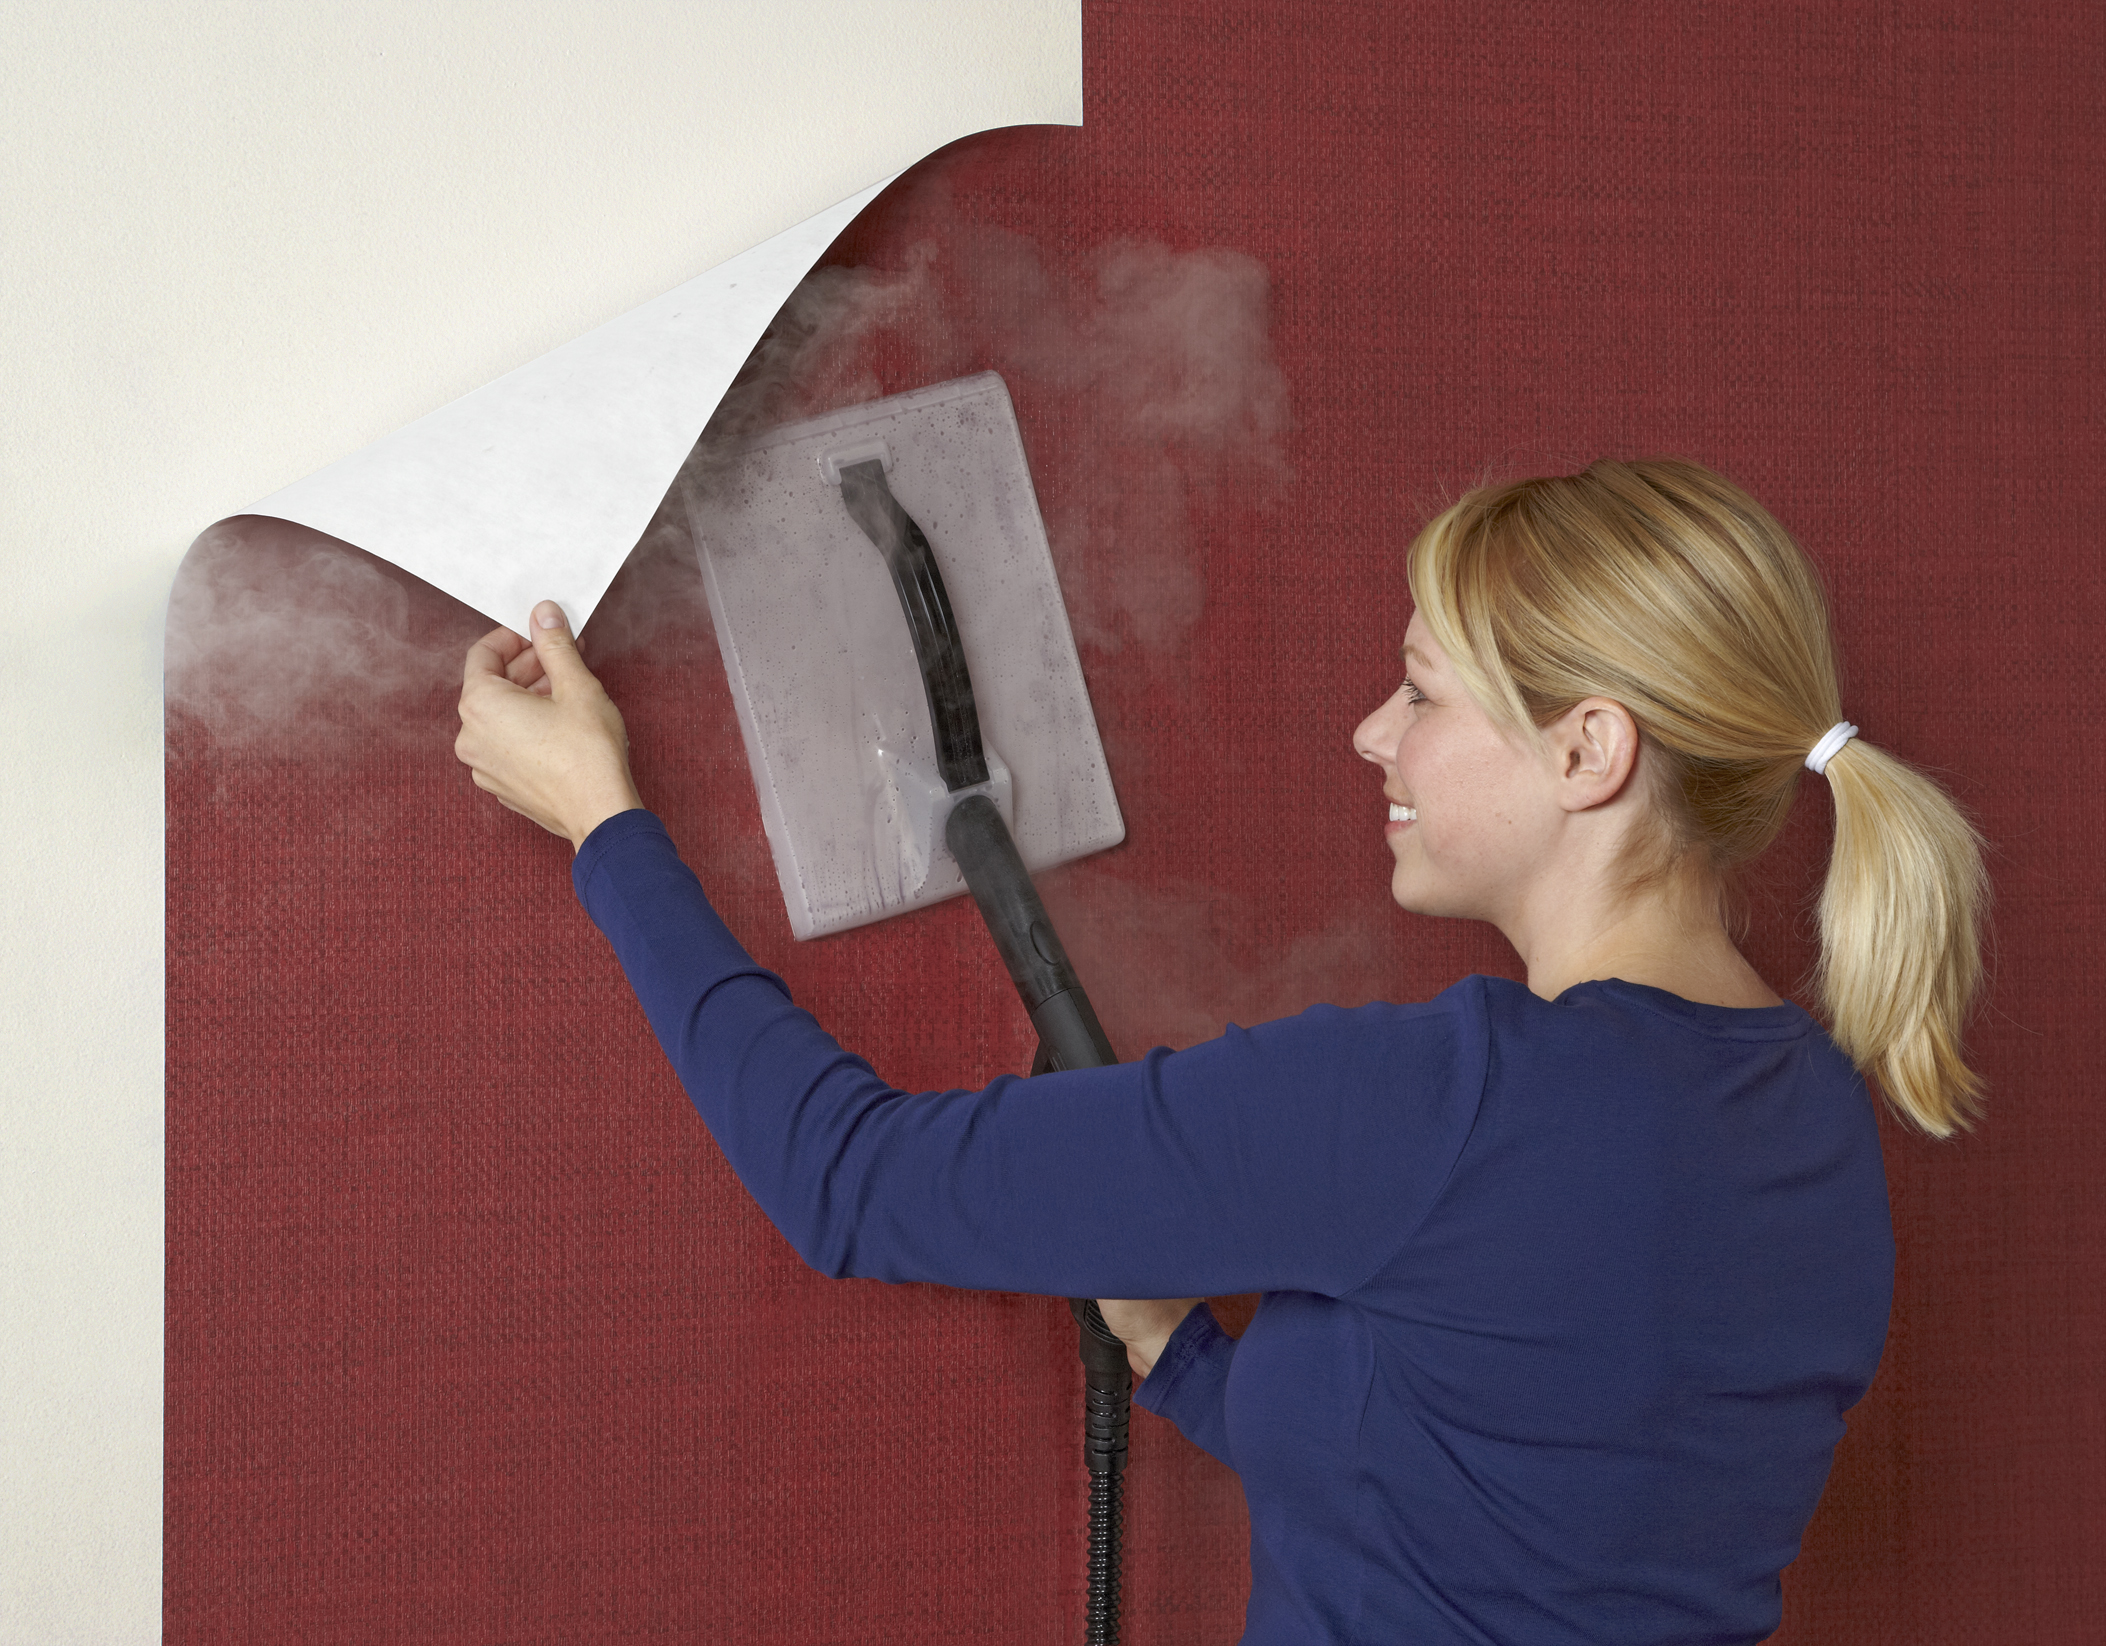 download easy way to take down wallpaper gallery